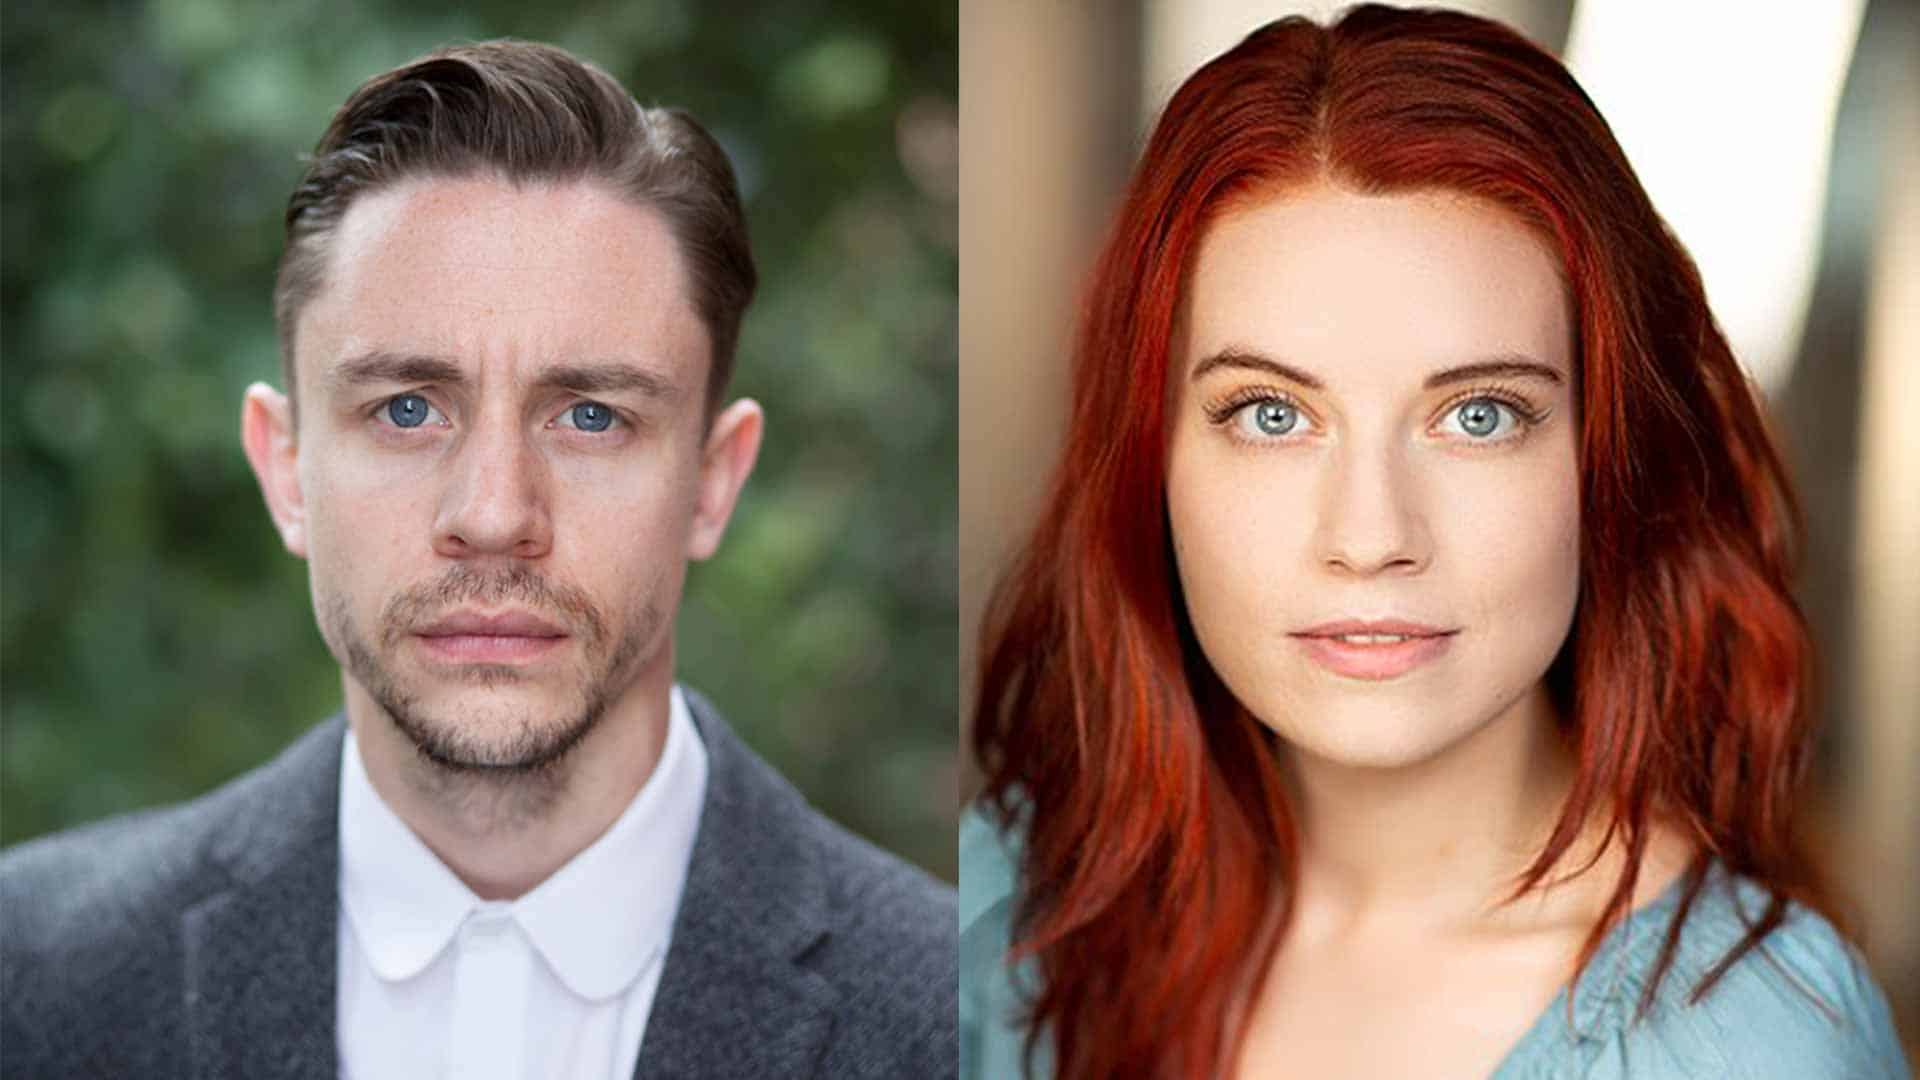 Up and coming British actors Tom Lewin and Penelope Yeulet